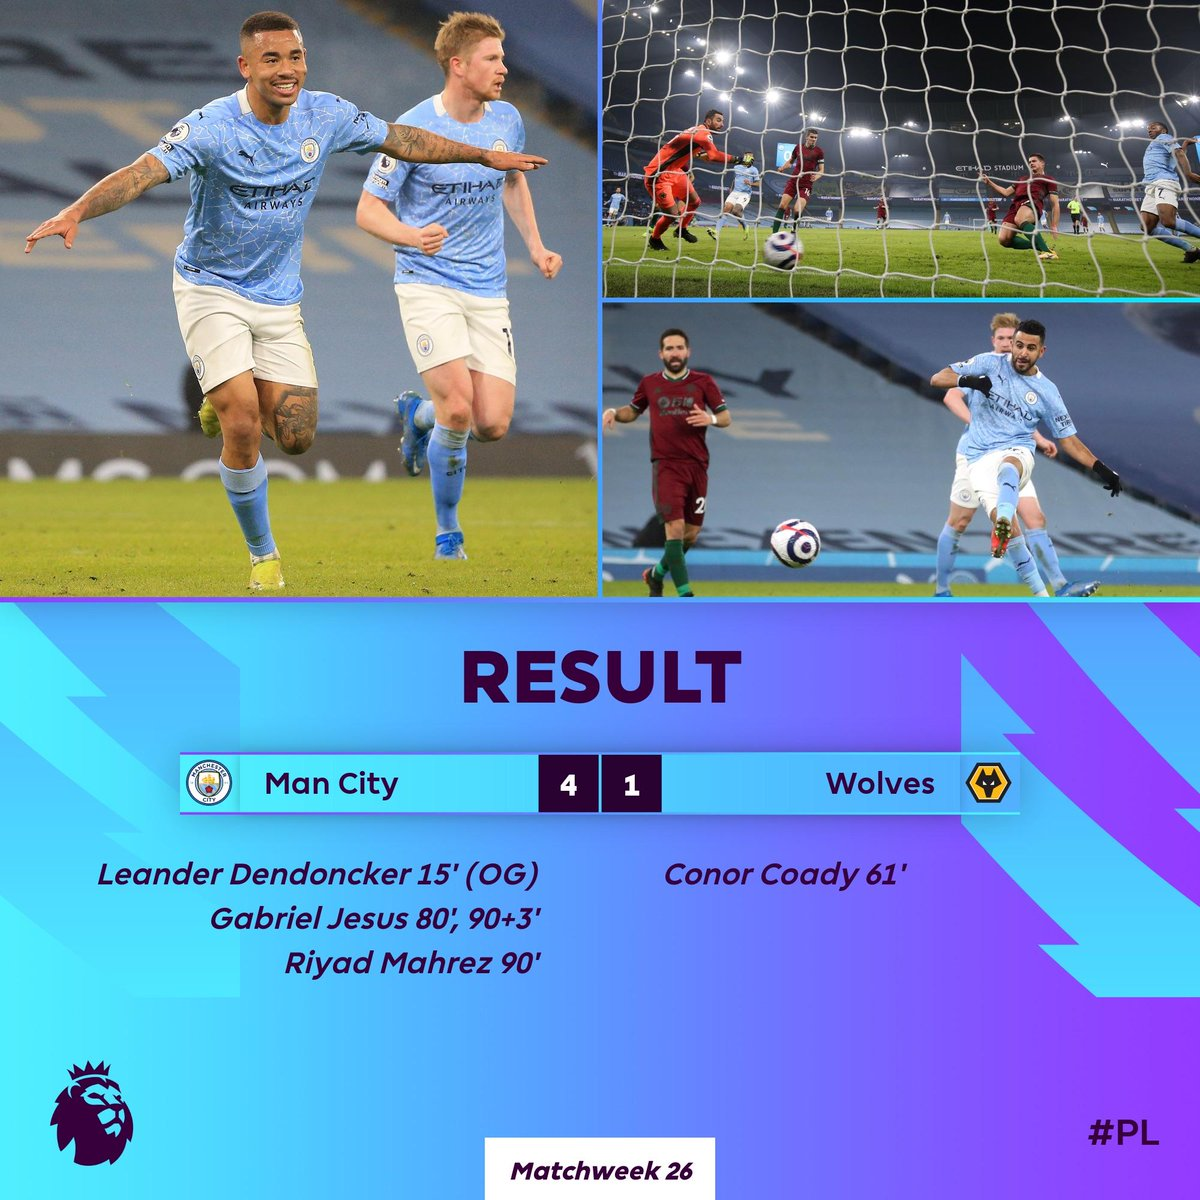 Man City cruise past Wolves to extend their lead at the top of the #PL  #MCIWOL